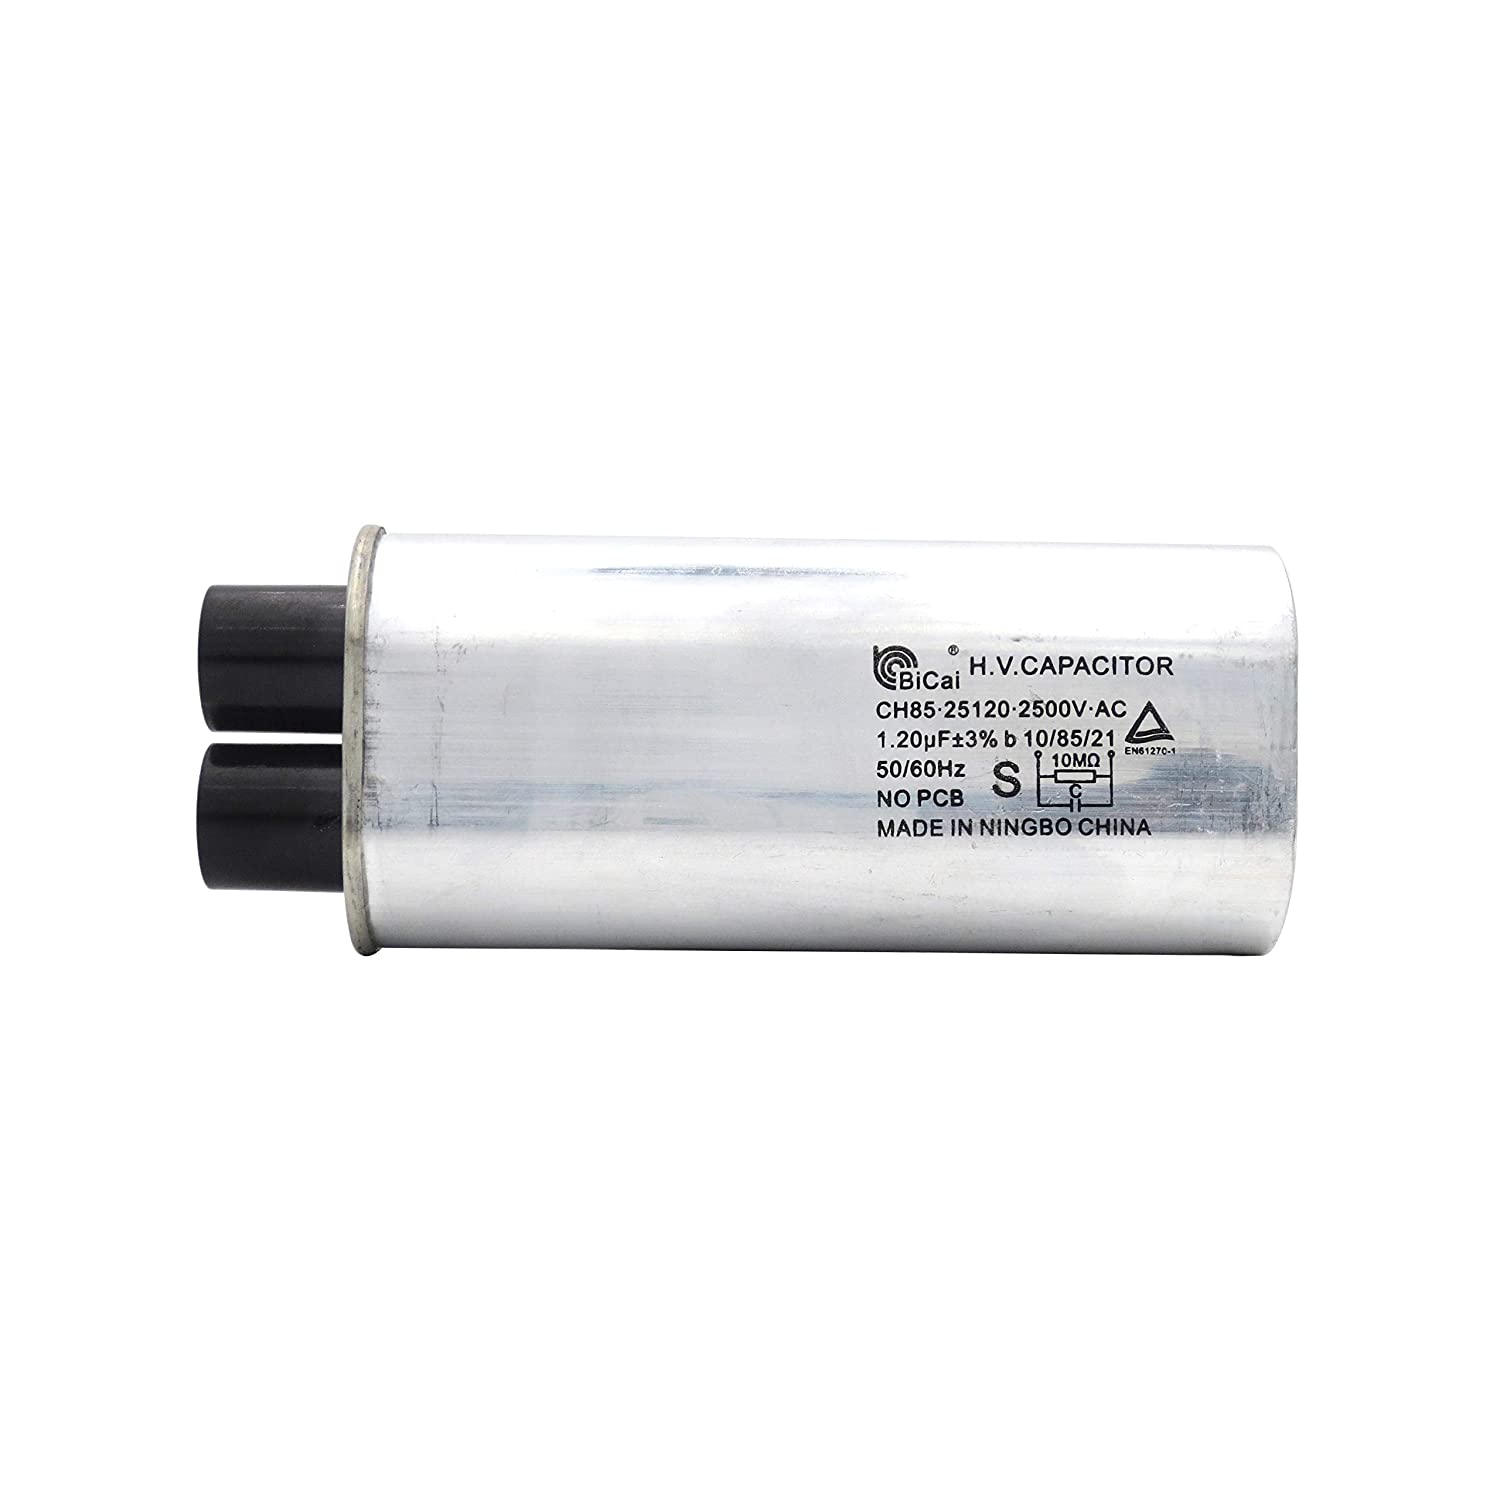 Meter Star CQC/&VDE Universal Household Microwave High Voltage Capacitor 1.20uf ch85 25120 2500V AC H.V.CAPACITOR 10//85//21 50//60Hz NO PCB